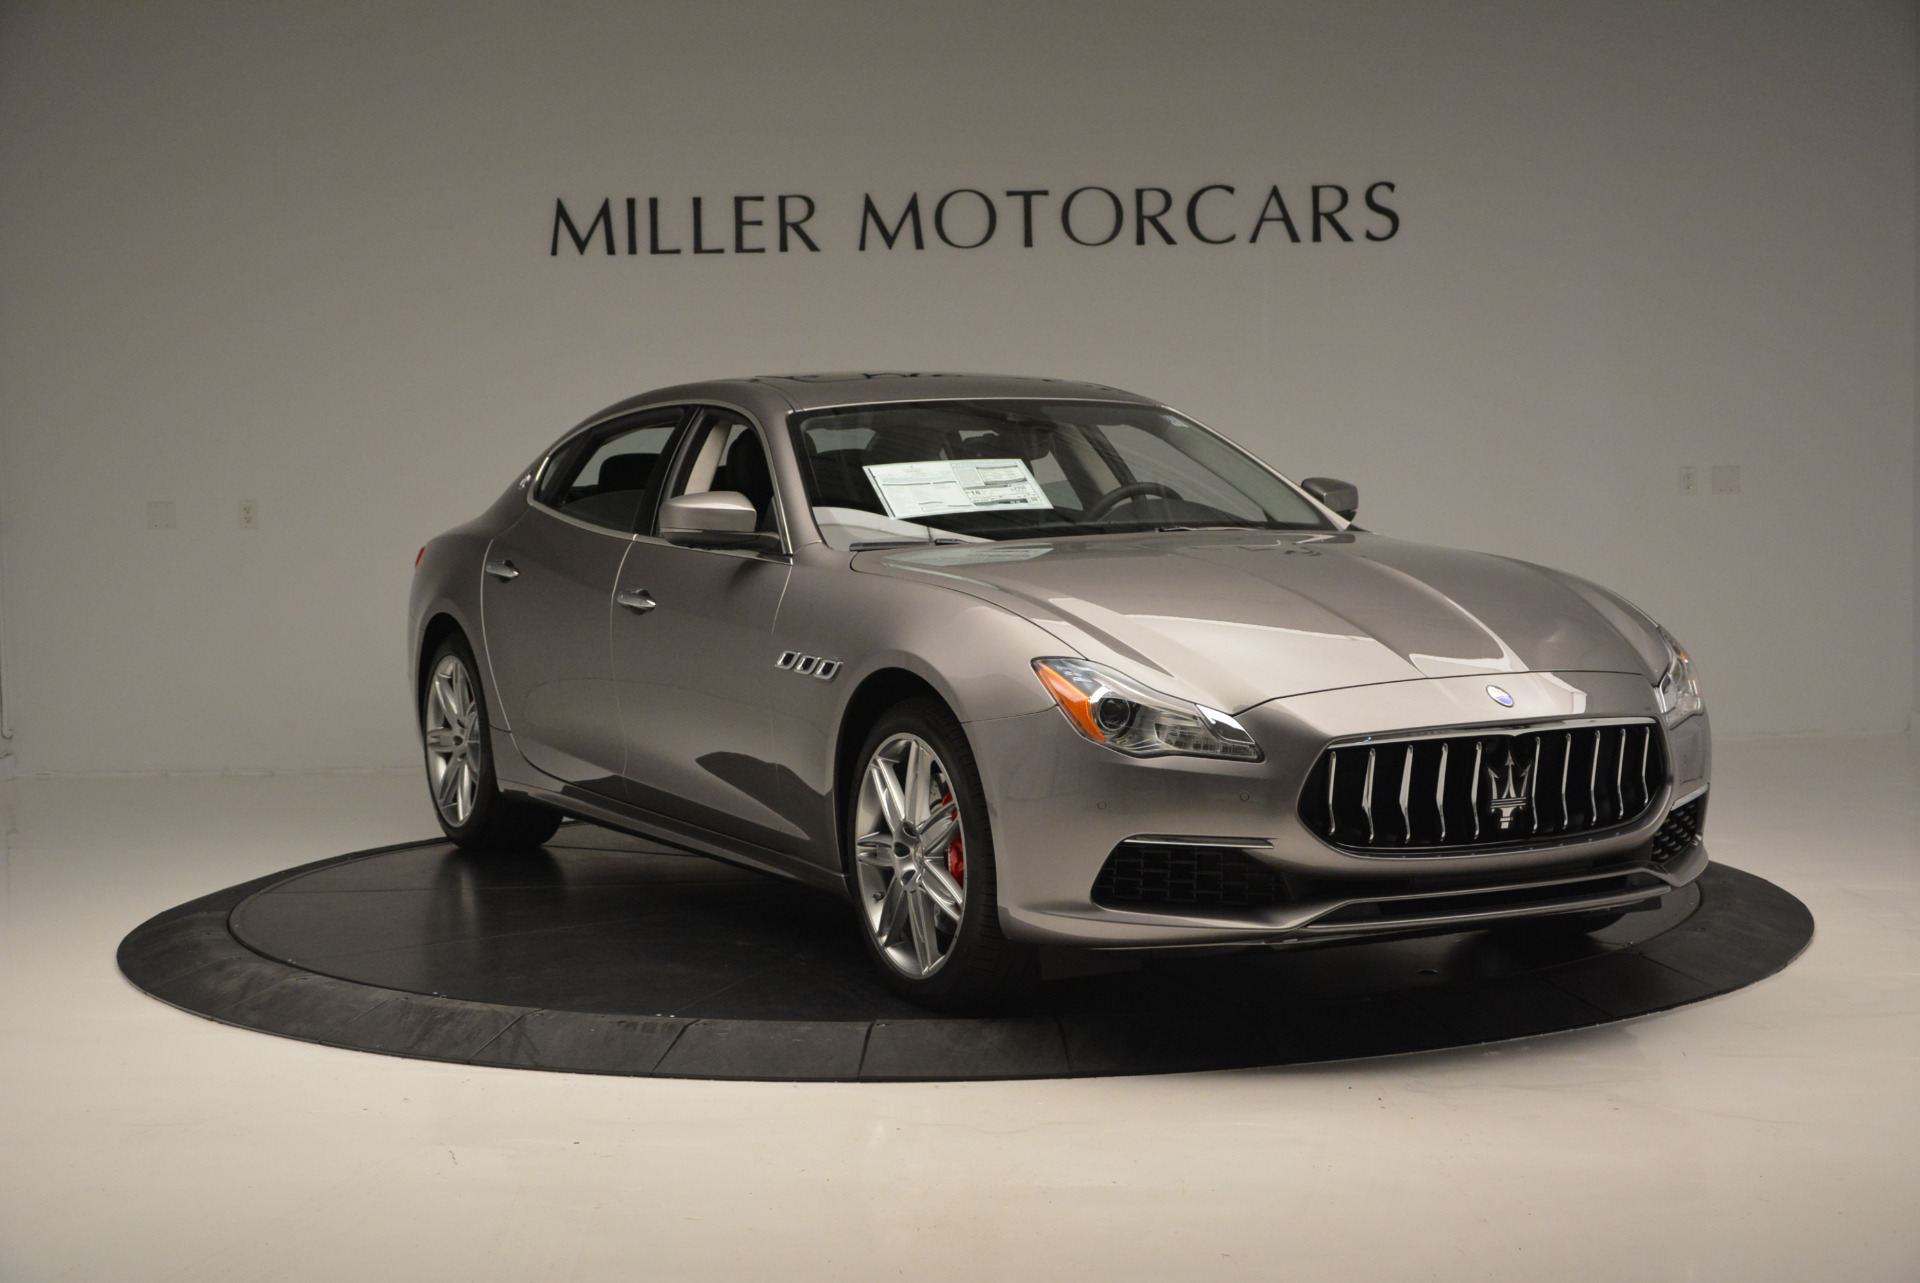 New 2017 Maserati Quattroporte S Q4 GranLusso For Sale In Westport, CT 611_p11